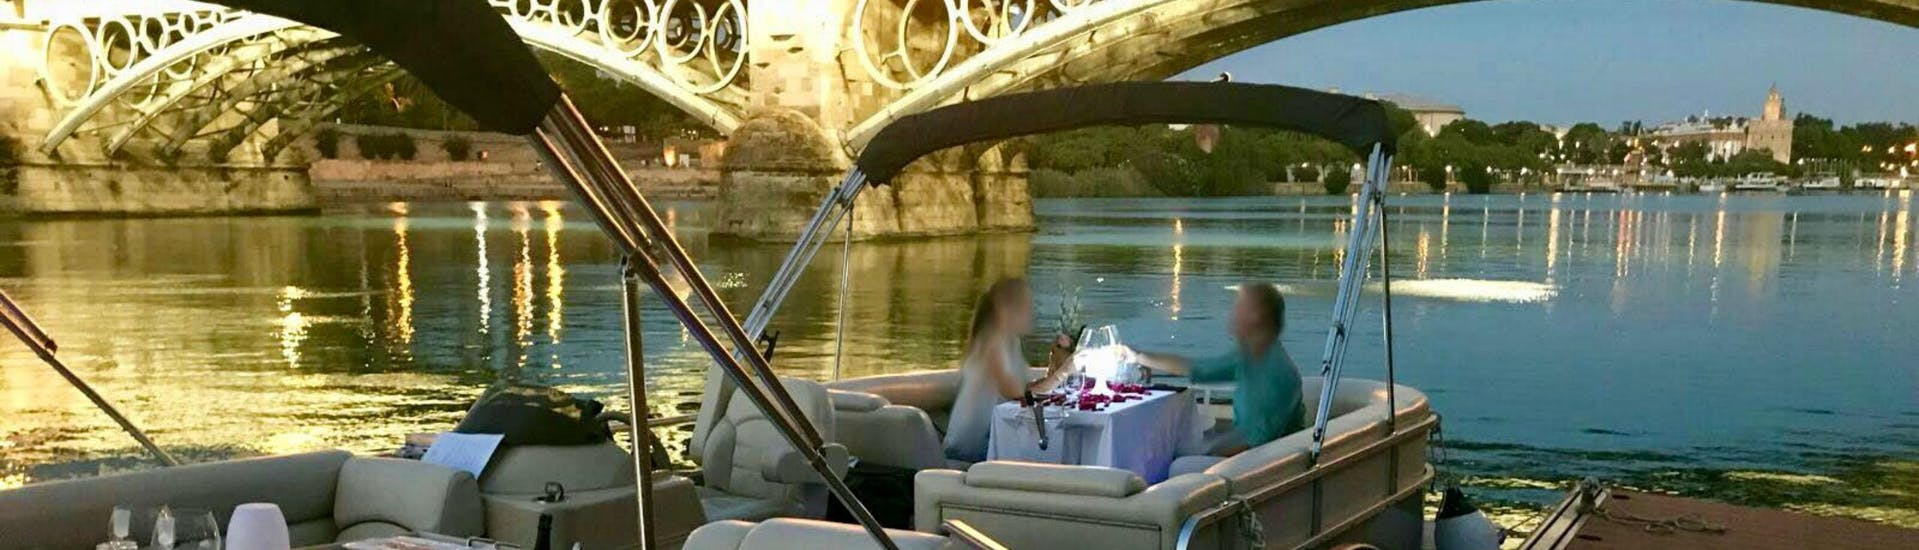 Private Sightseeing Boat Trip with Dinner in Seville